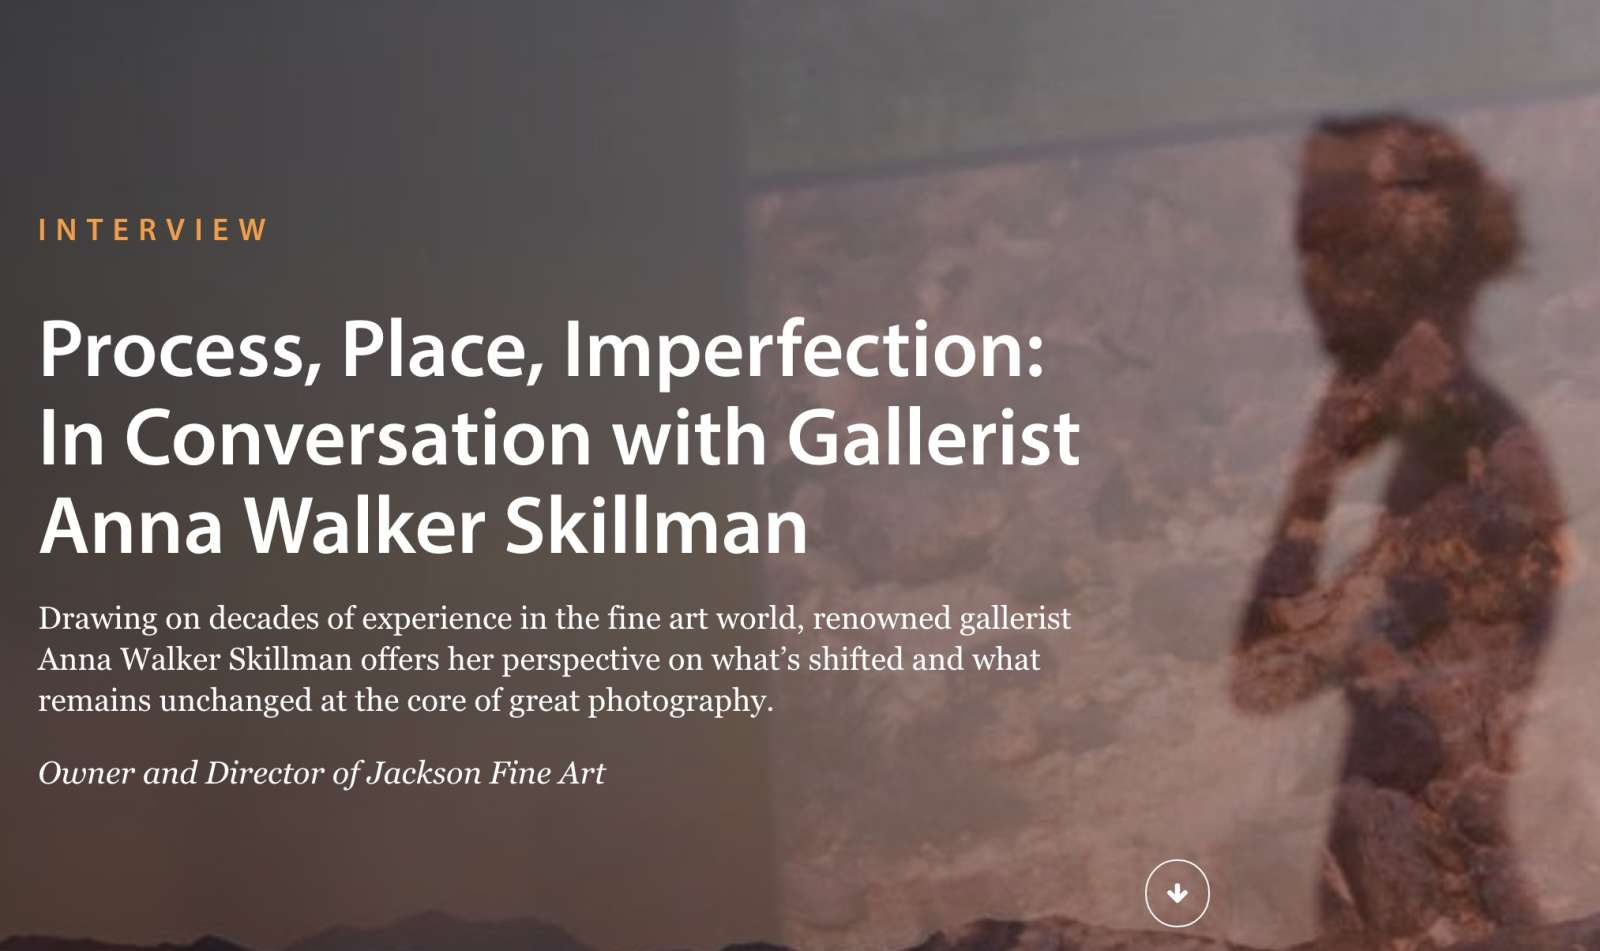 Process, Place, Imperfection: In Conversation with Gallerist Anna Walker Skillman